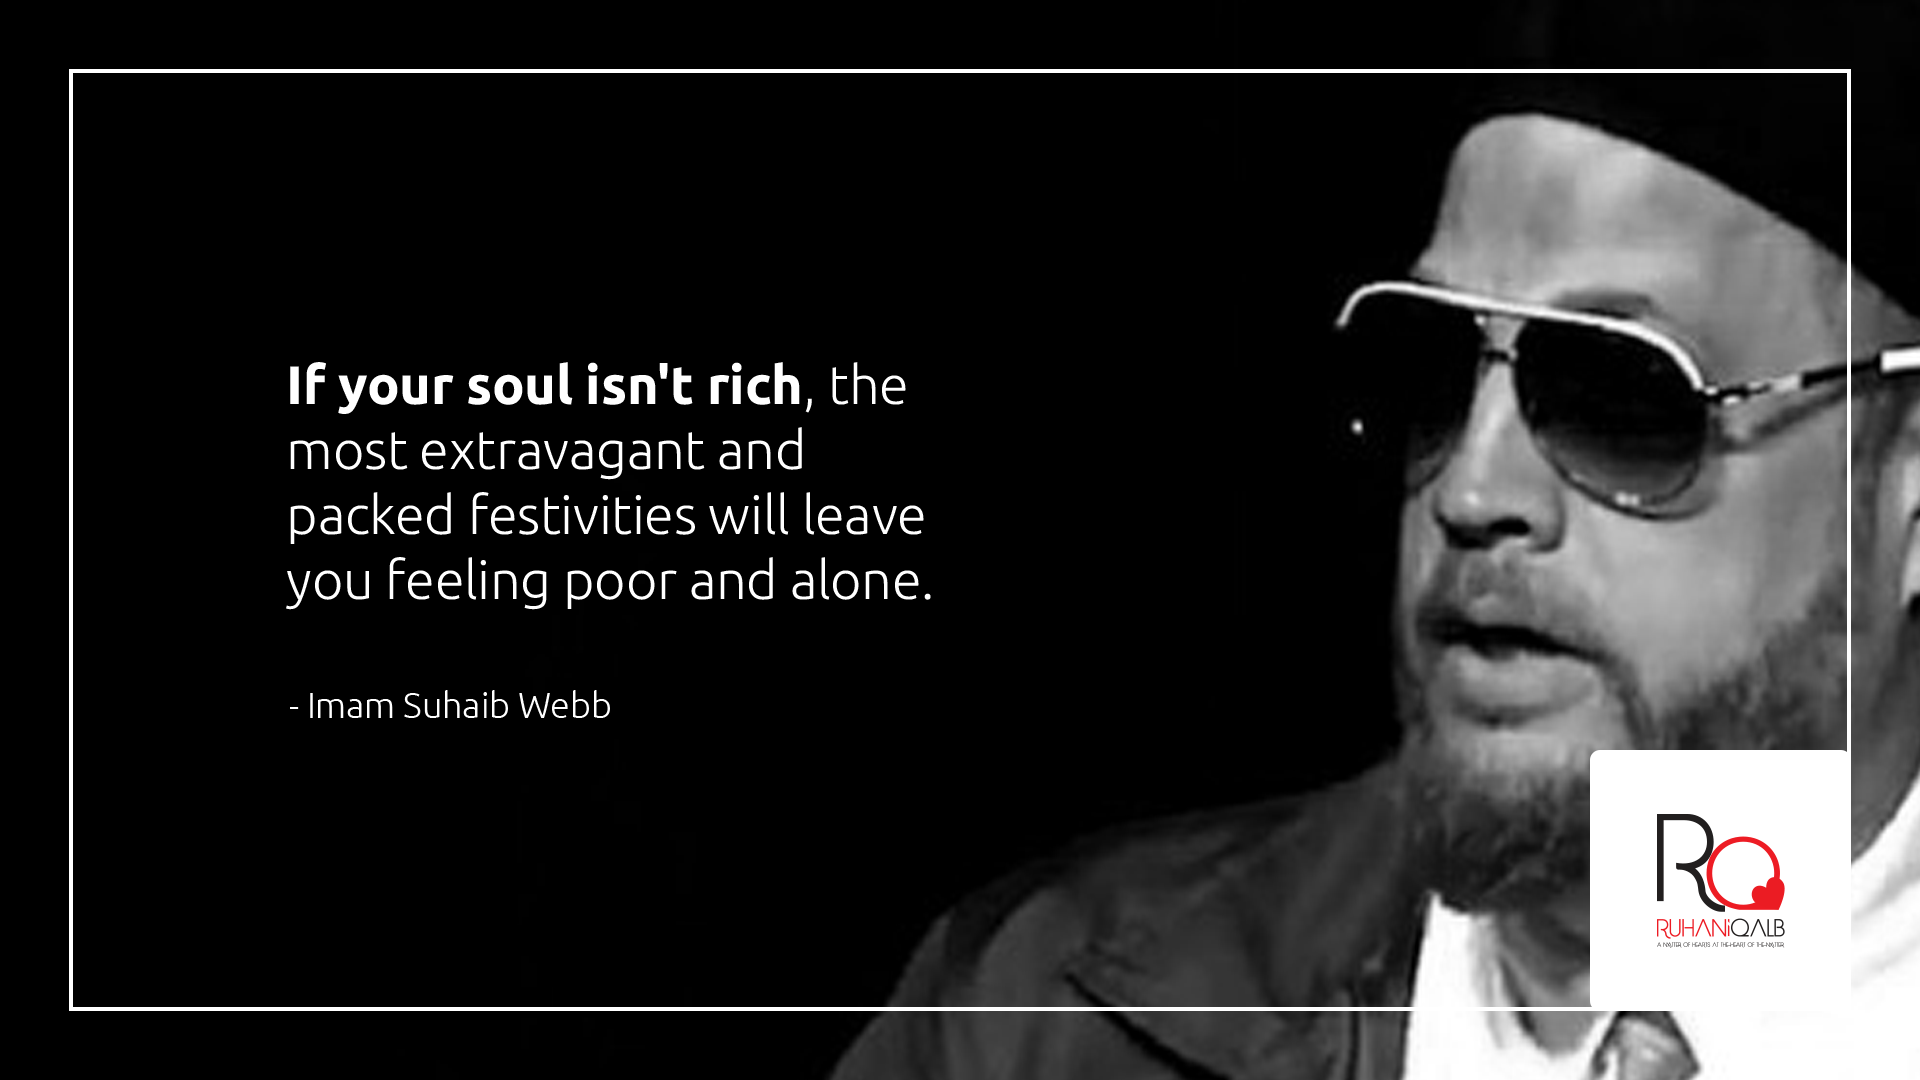 If-your-soul-isnt-rich